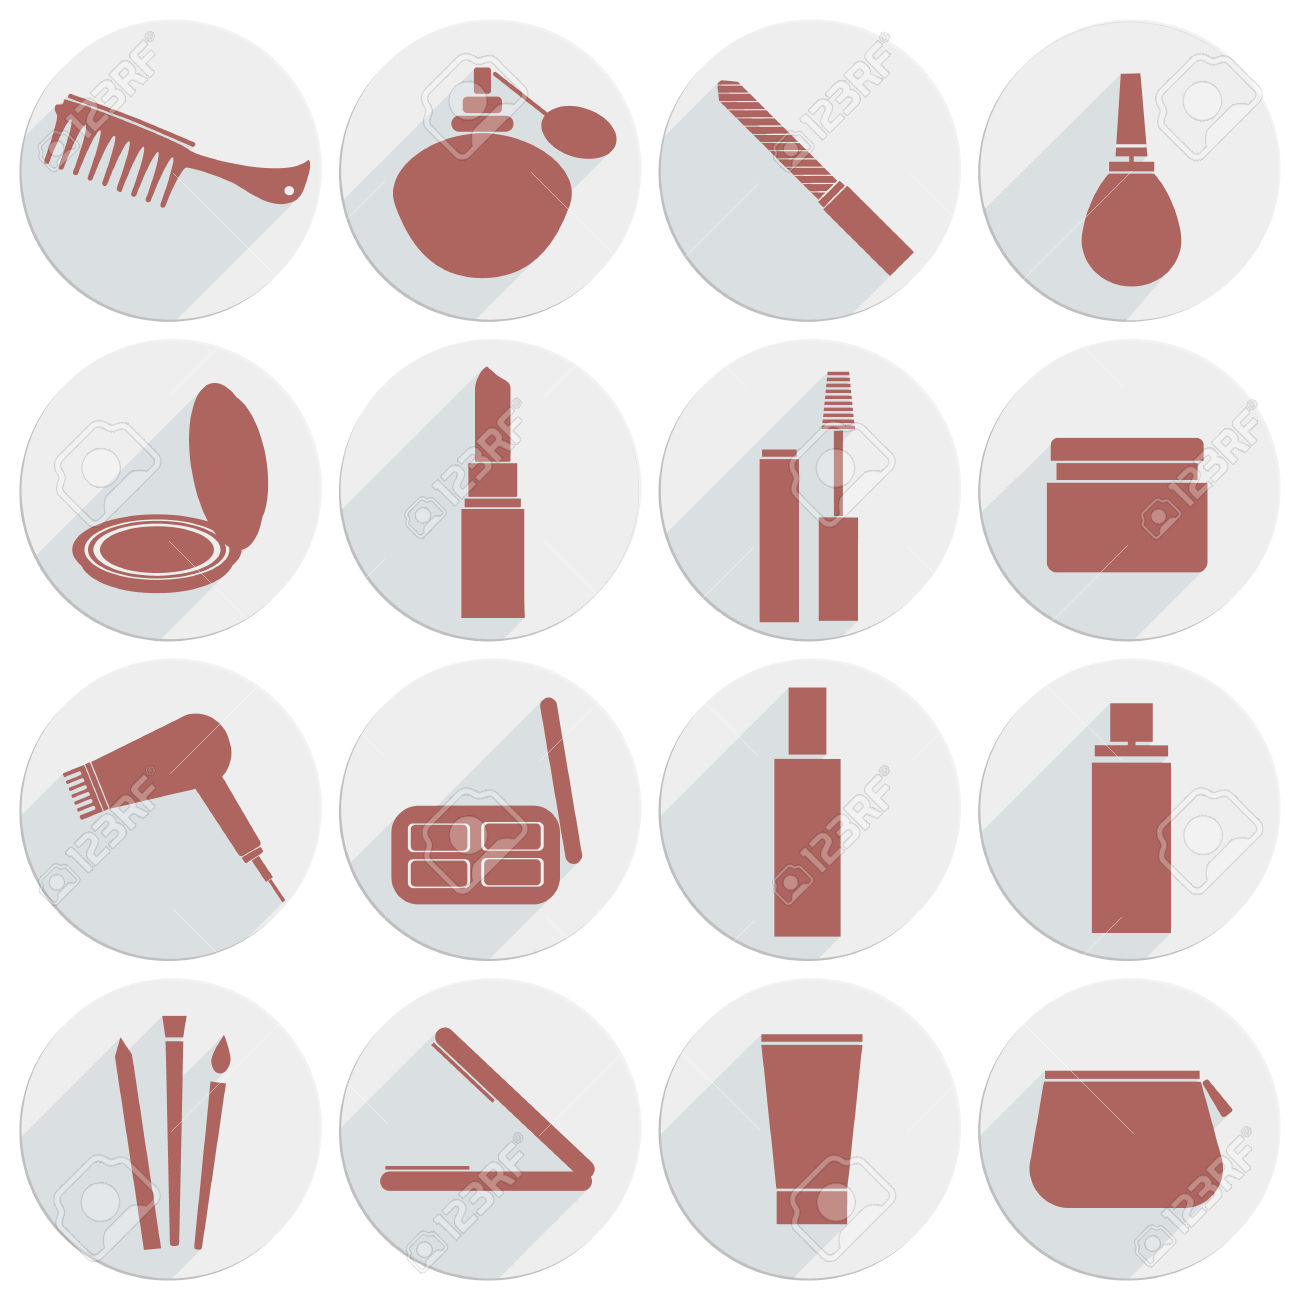 Vector, Icon, Beauty, Makeup, Comb, Cream, Hair, Lipstick, Mascara.